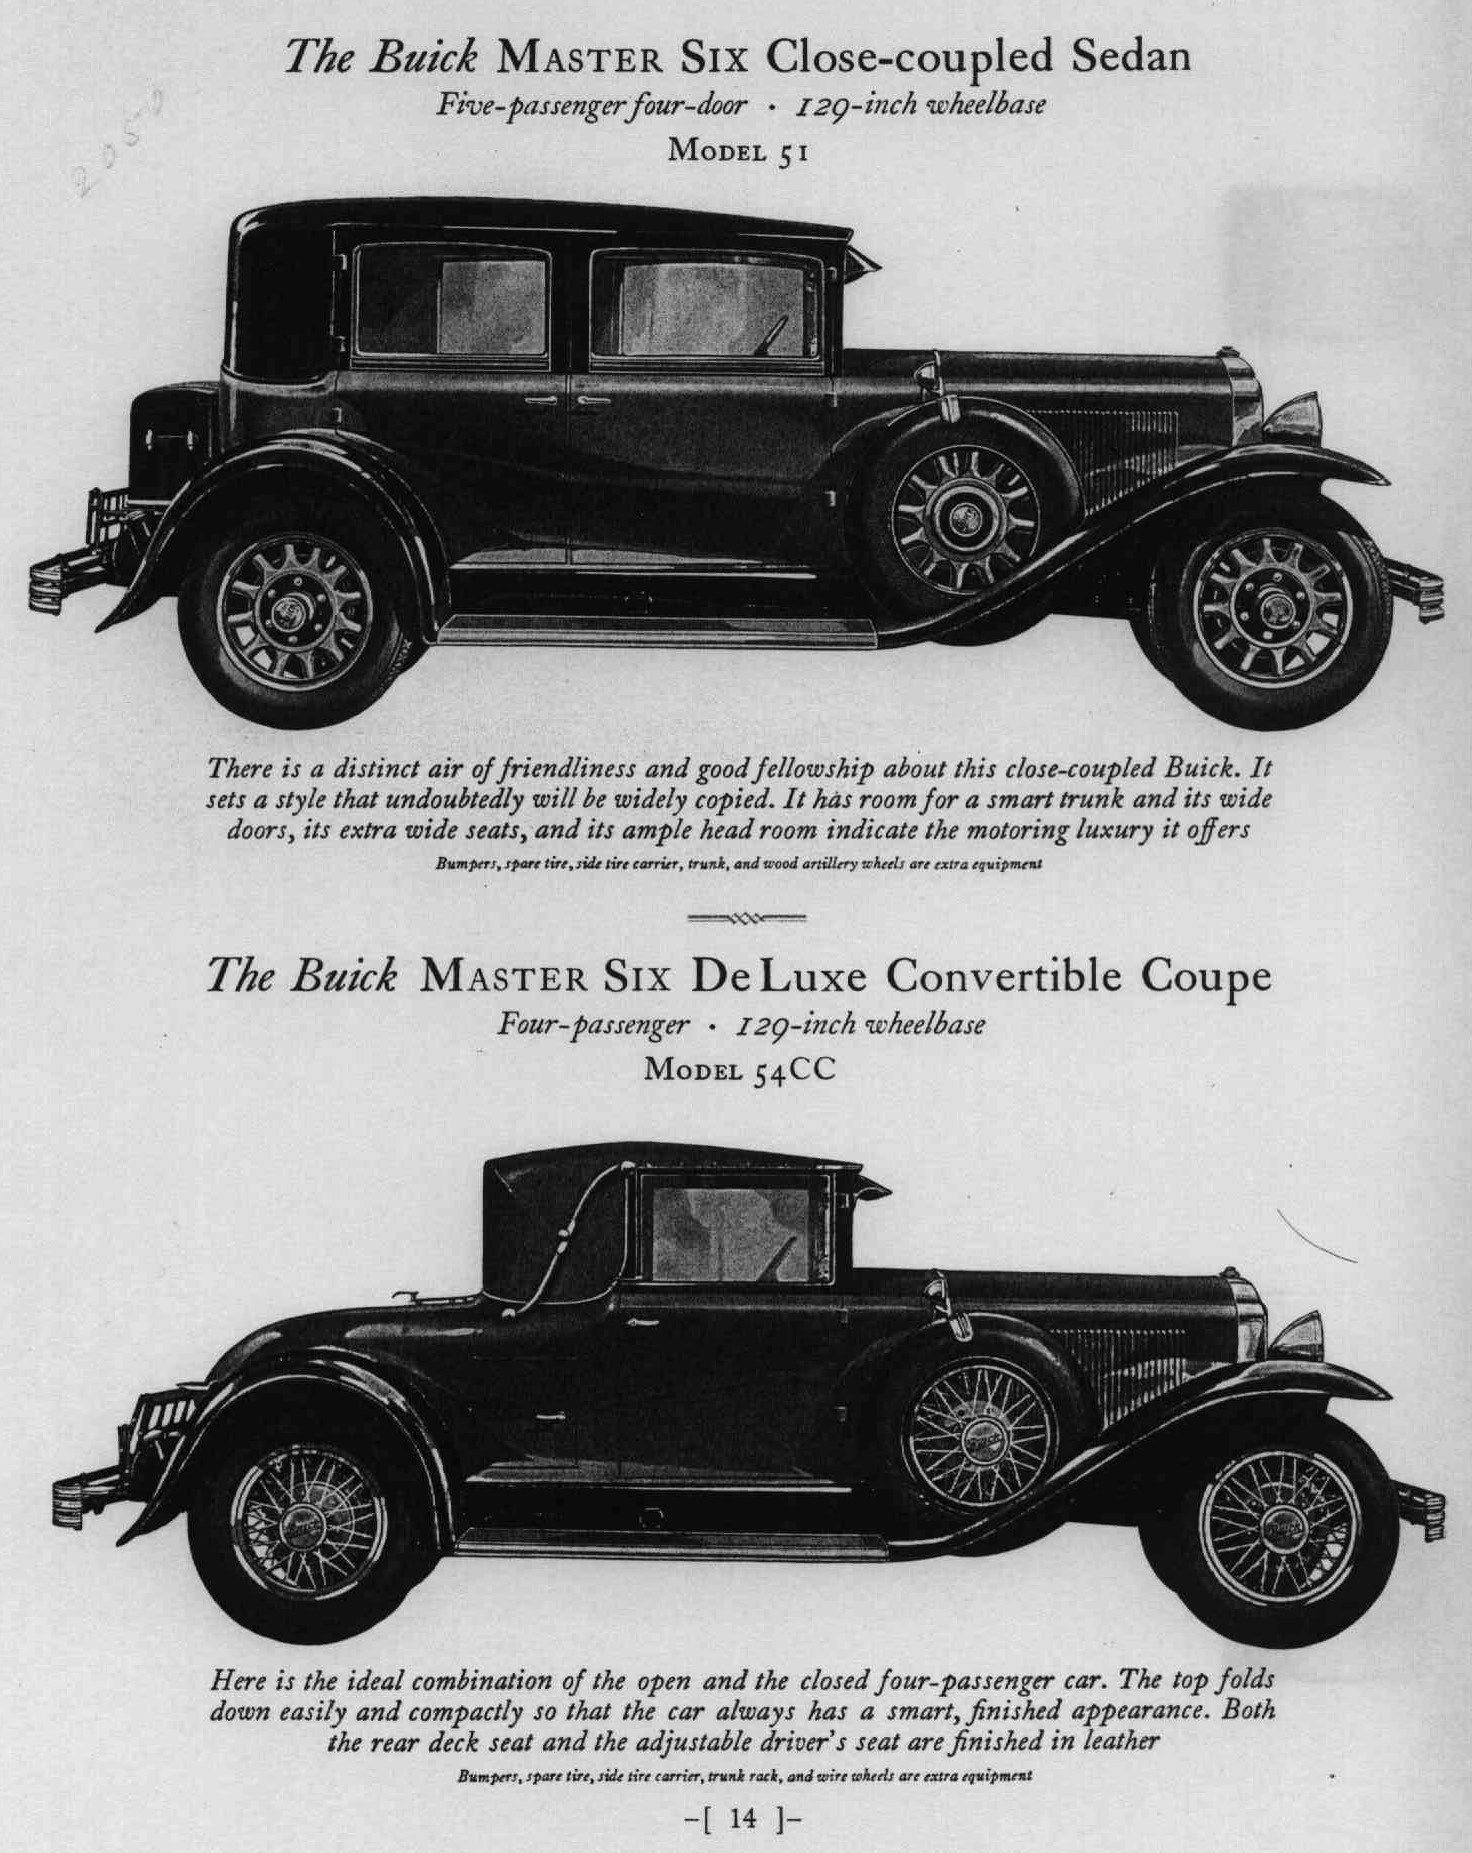 1929 Buick Silver Anniversary Brochure page 15 of 47